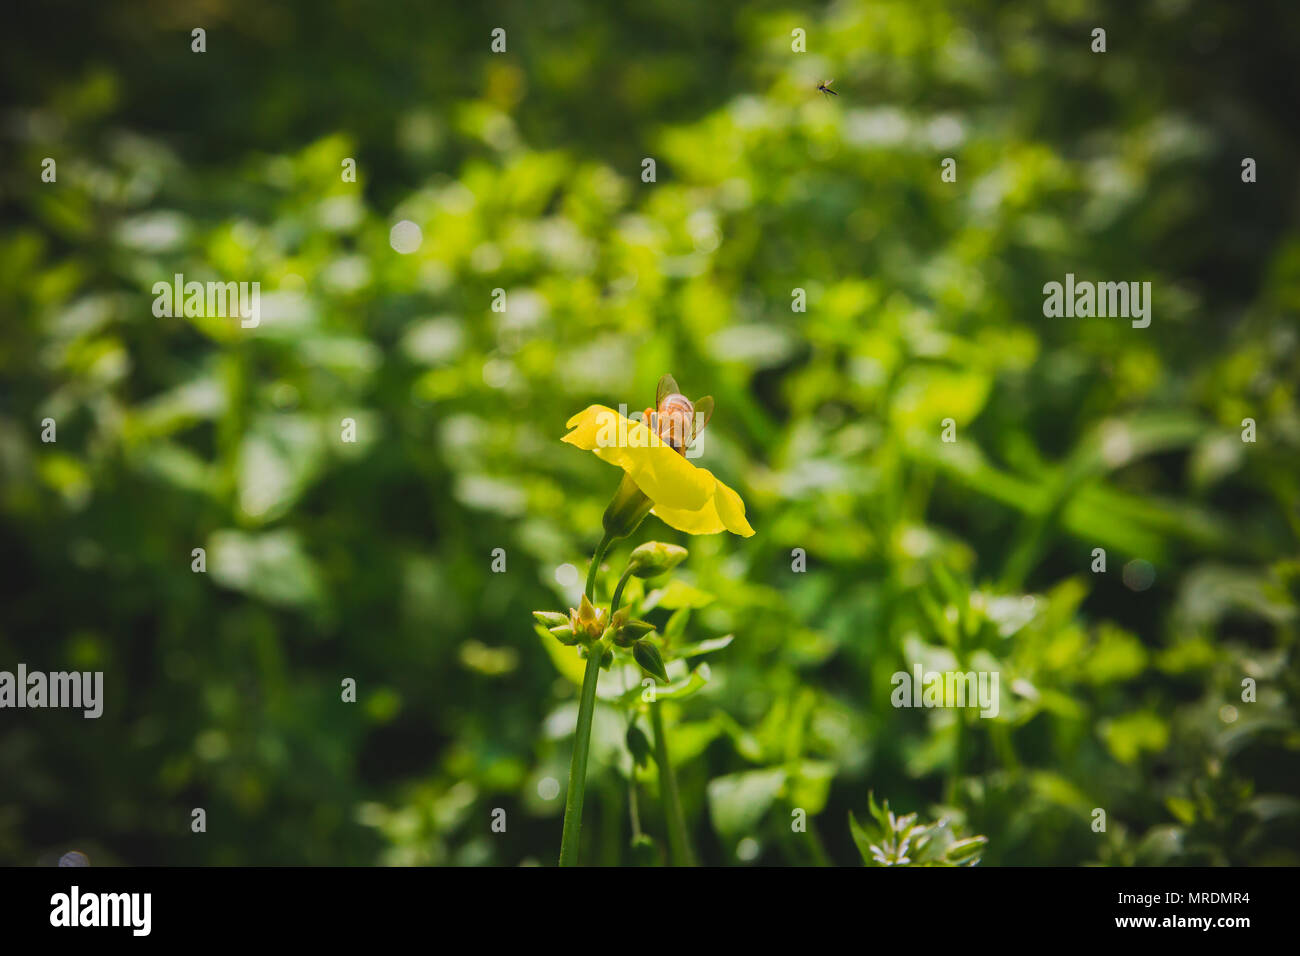 Bee on yellow flower. Close up. Selective focus. vintage look. - Stock Image